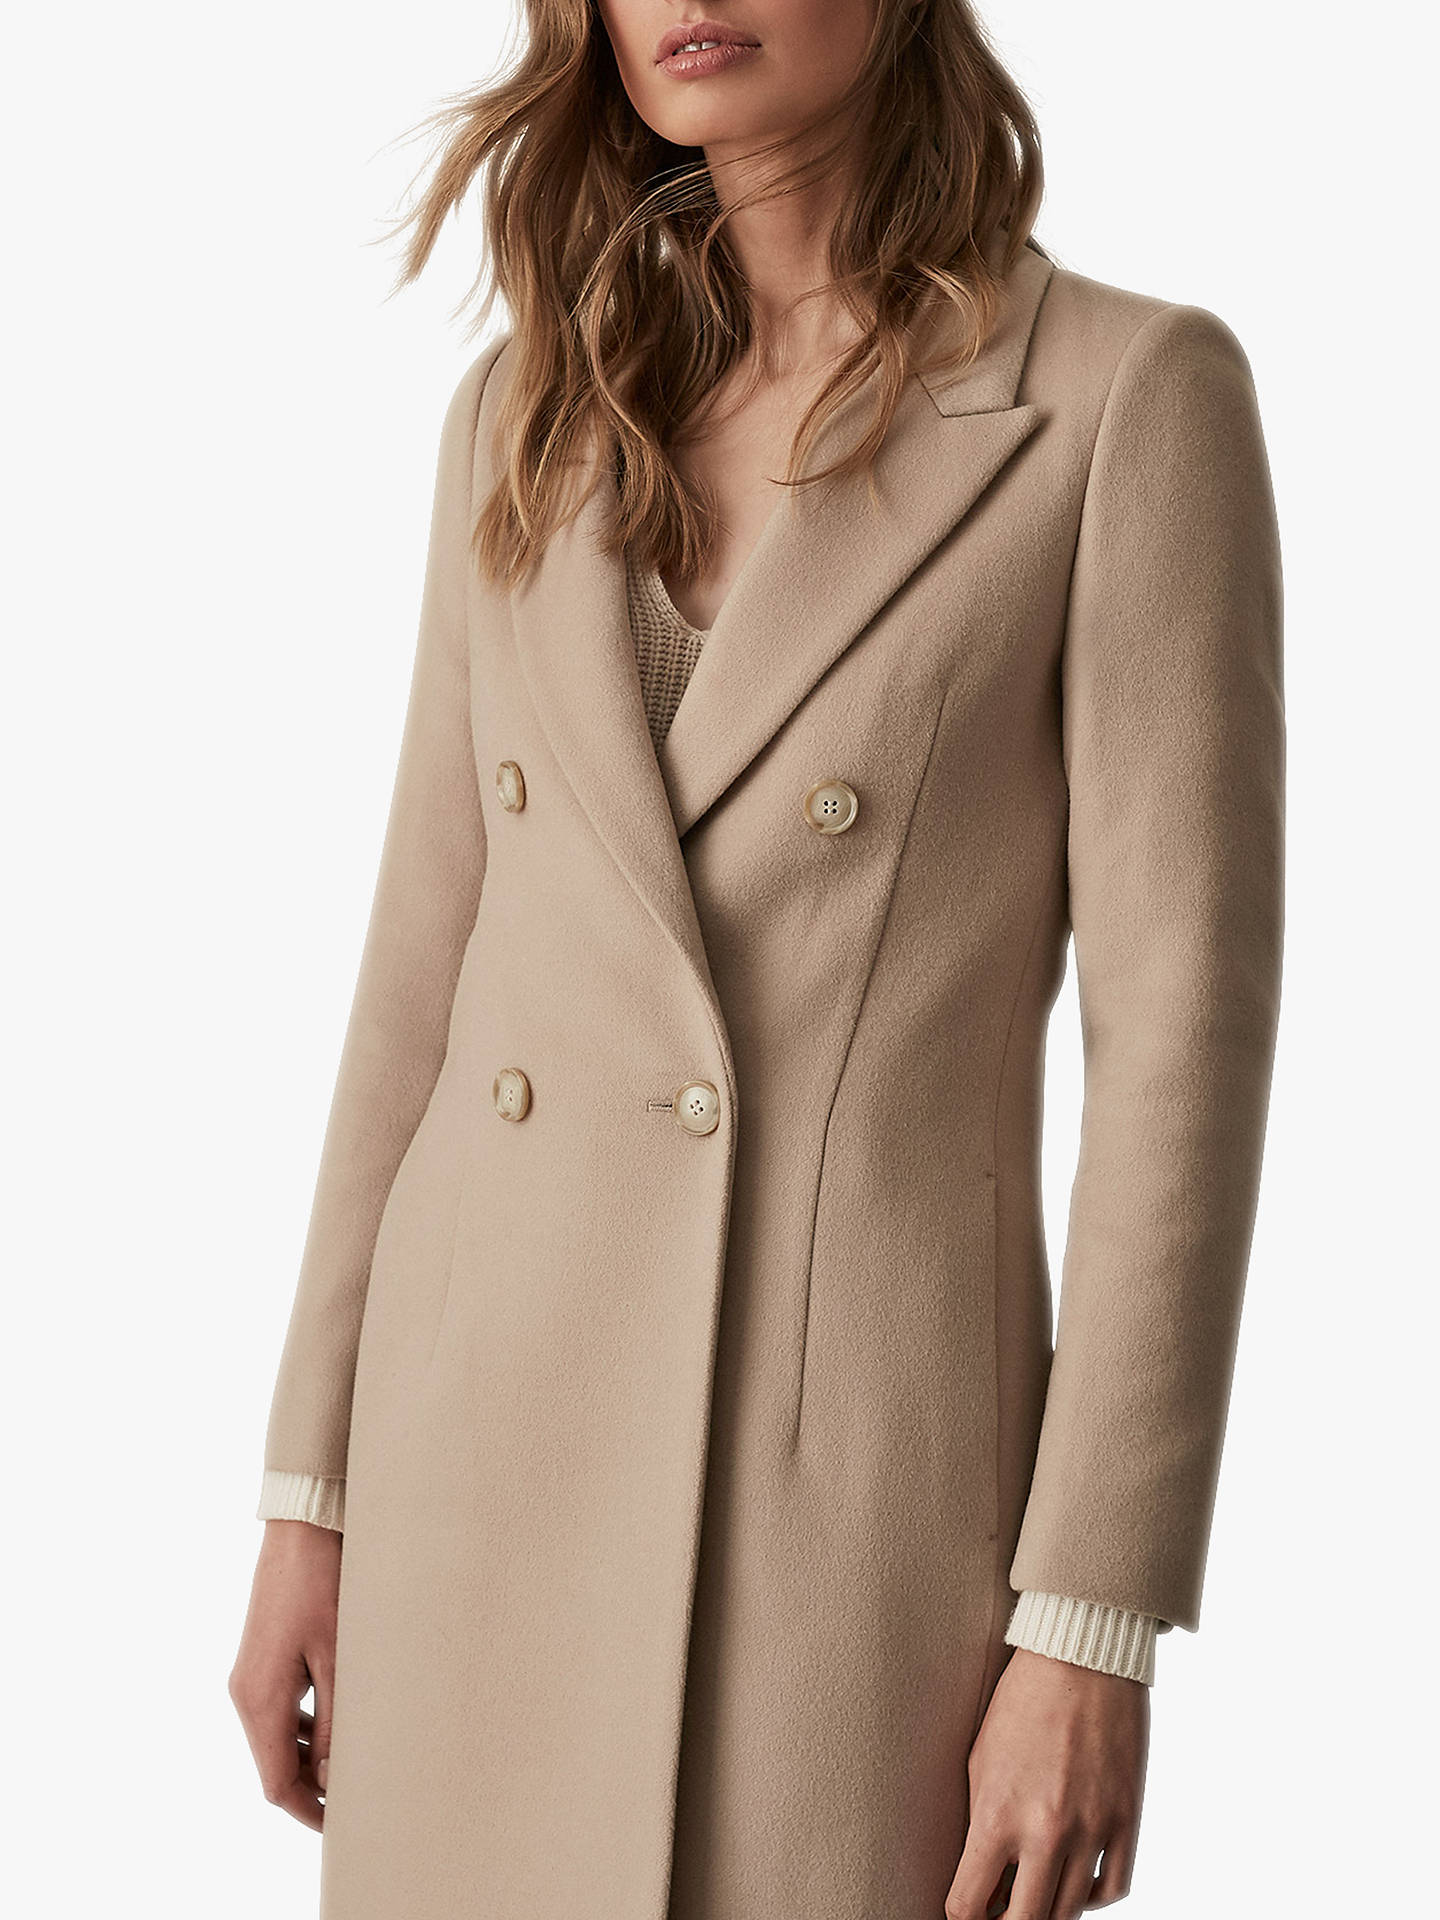 Buy Reiss Heston Longline Double Breasted Coat, Camel, 6 Online at johnlewis.com